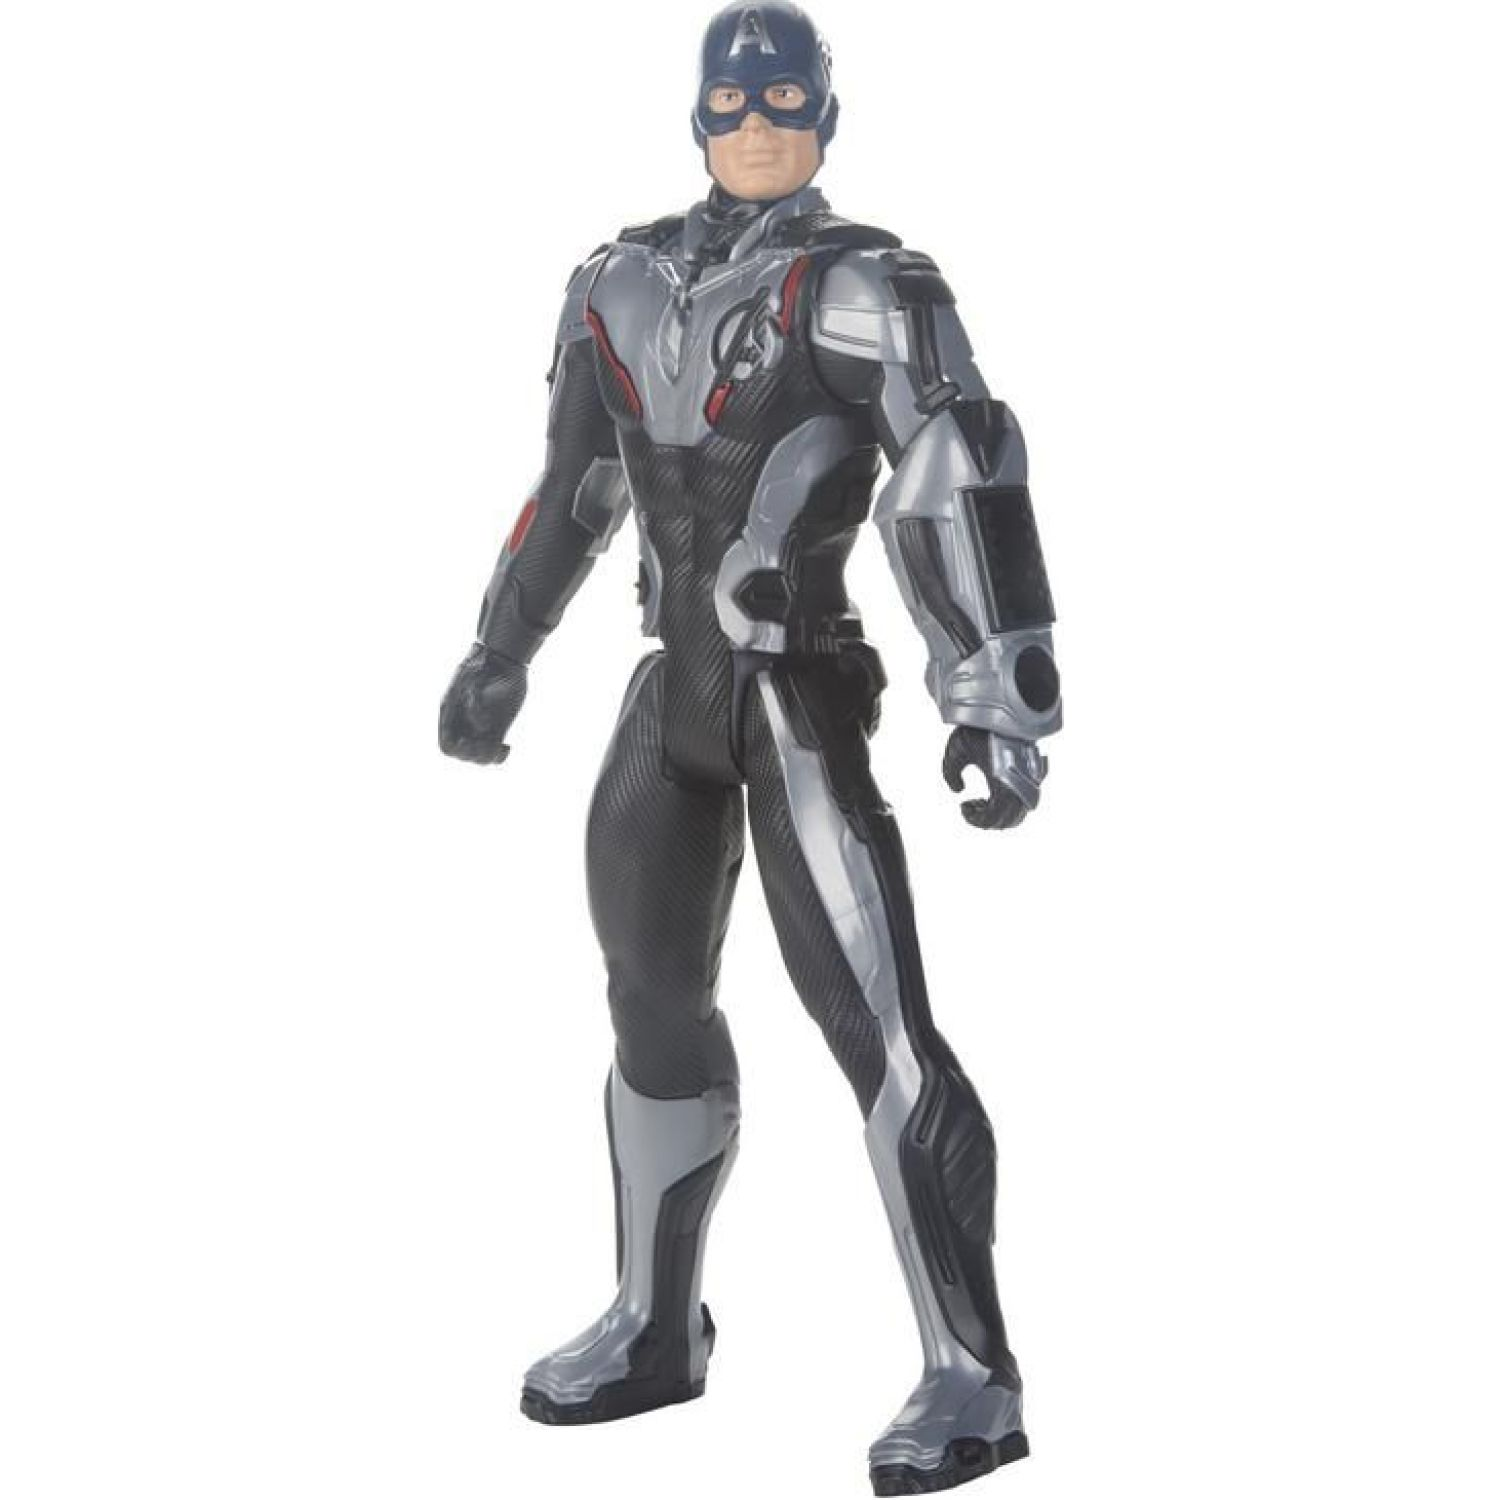 Avengers Avengers Th Power Fx 2.0 Hero Capitan America Varios Figuras de acción